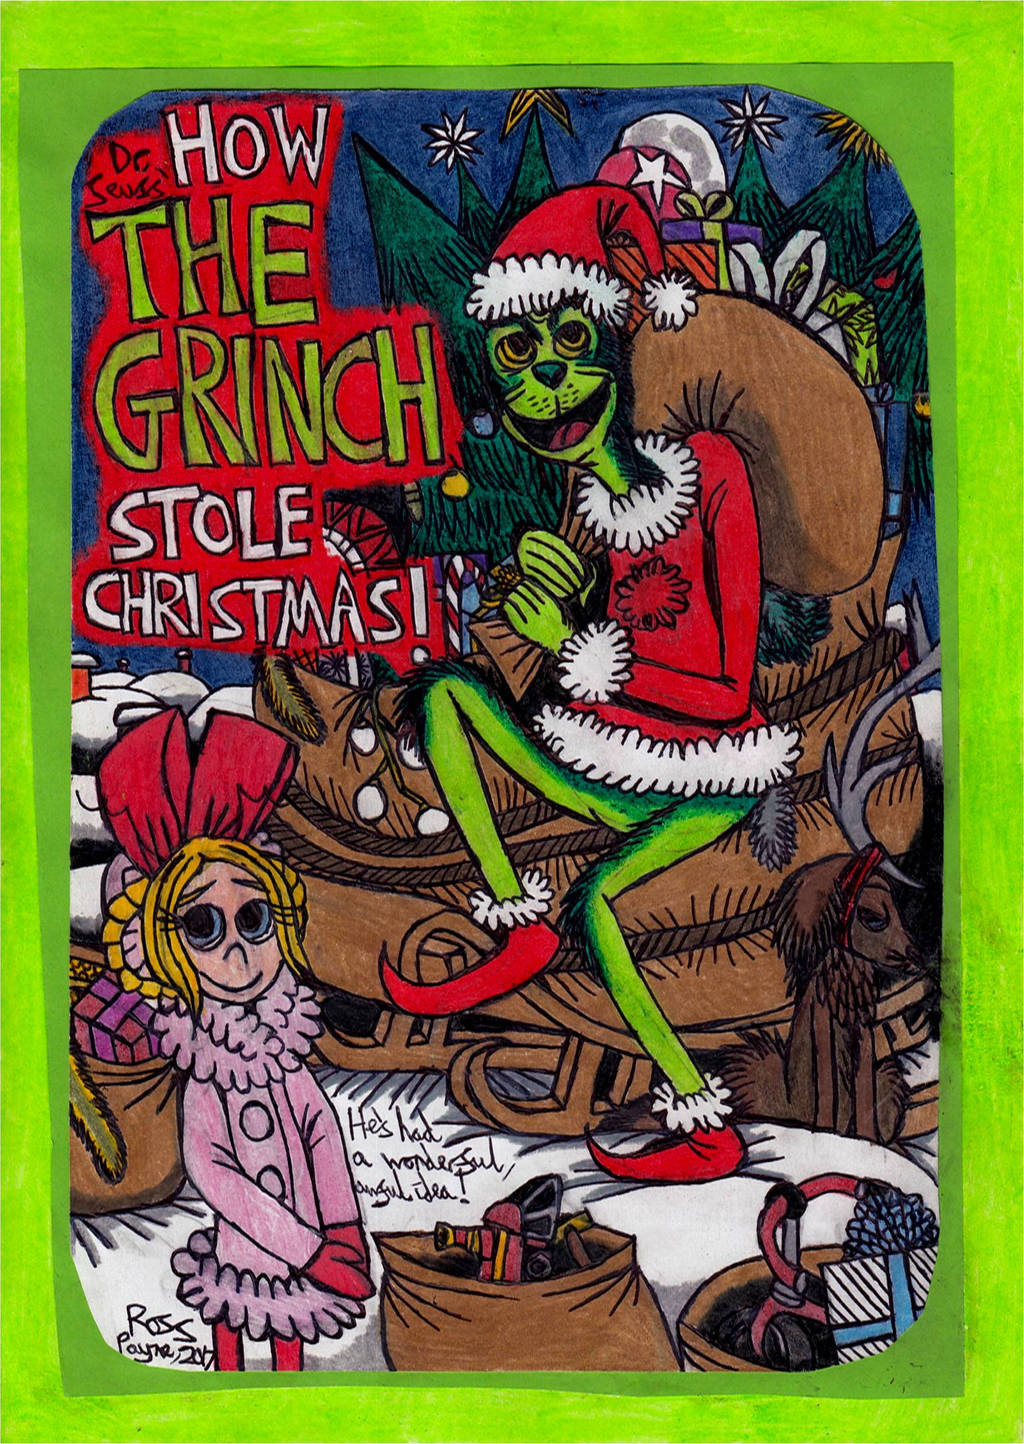 Dr. Seuss' How The Grinch Stole Christmas! 1 By Khialat On